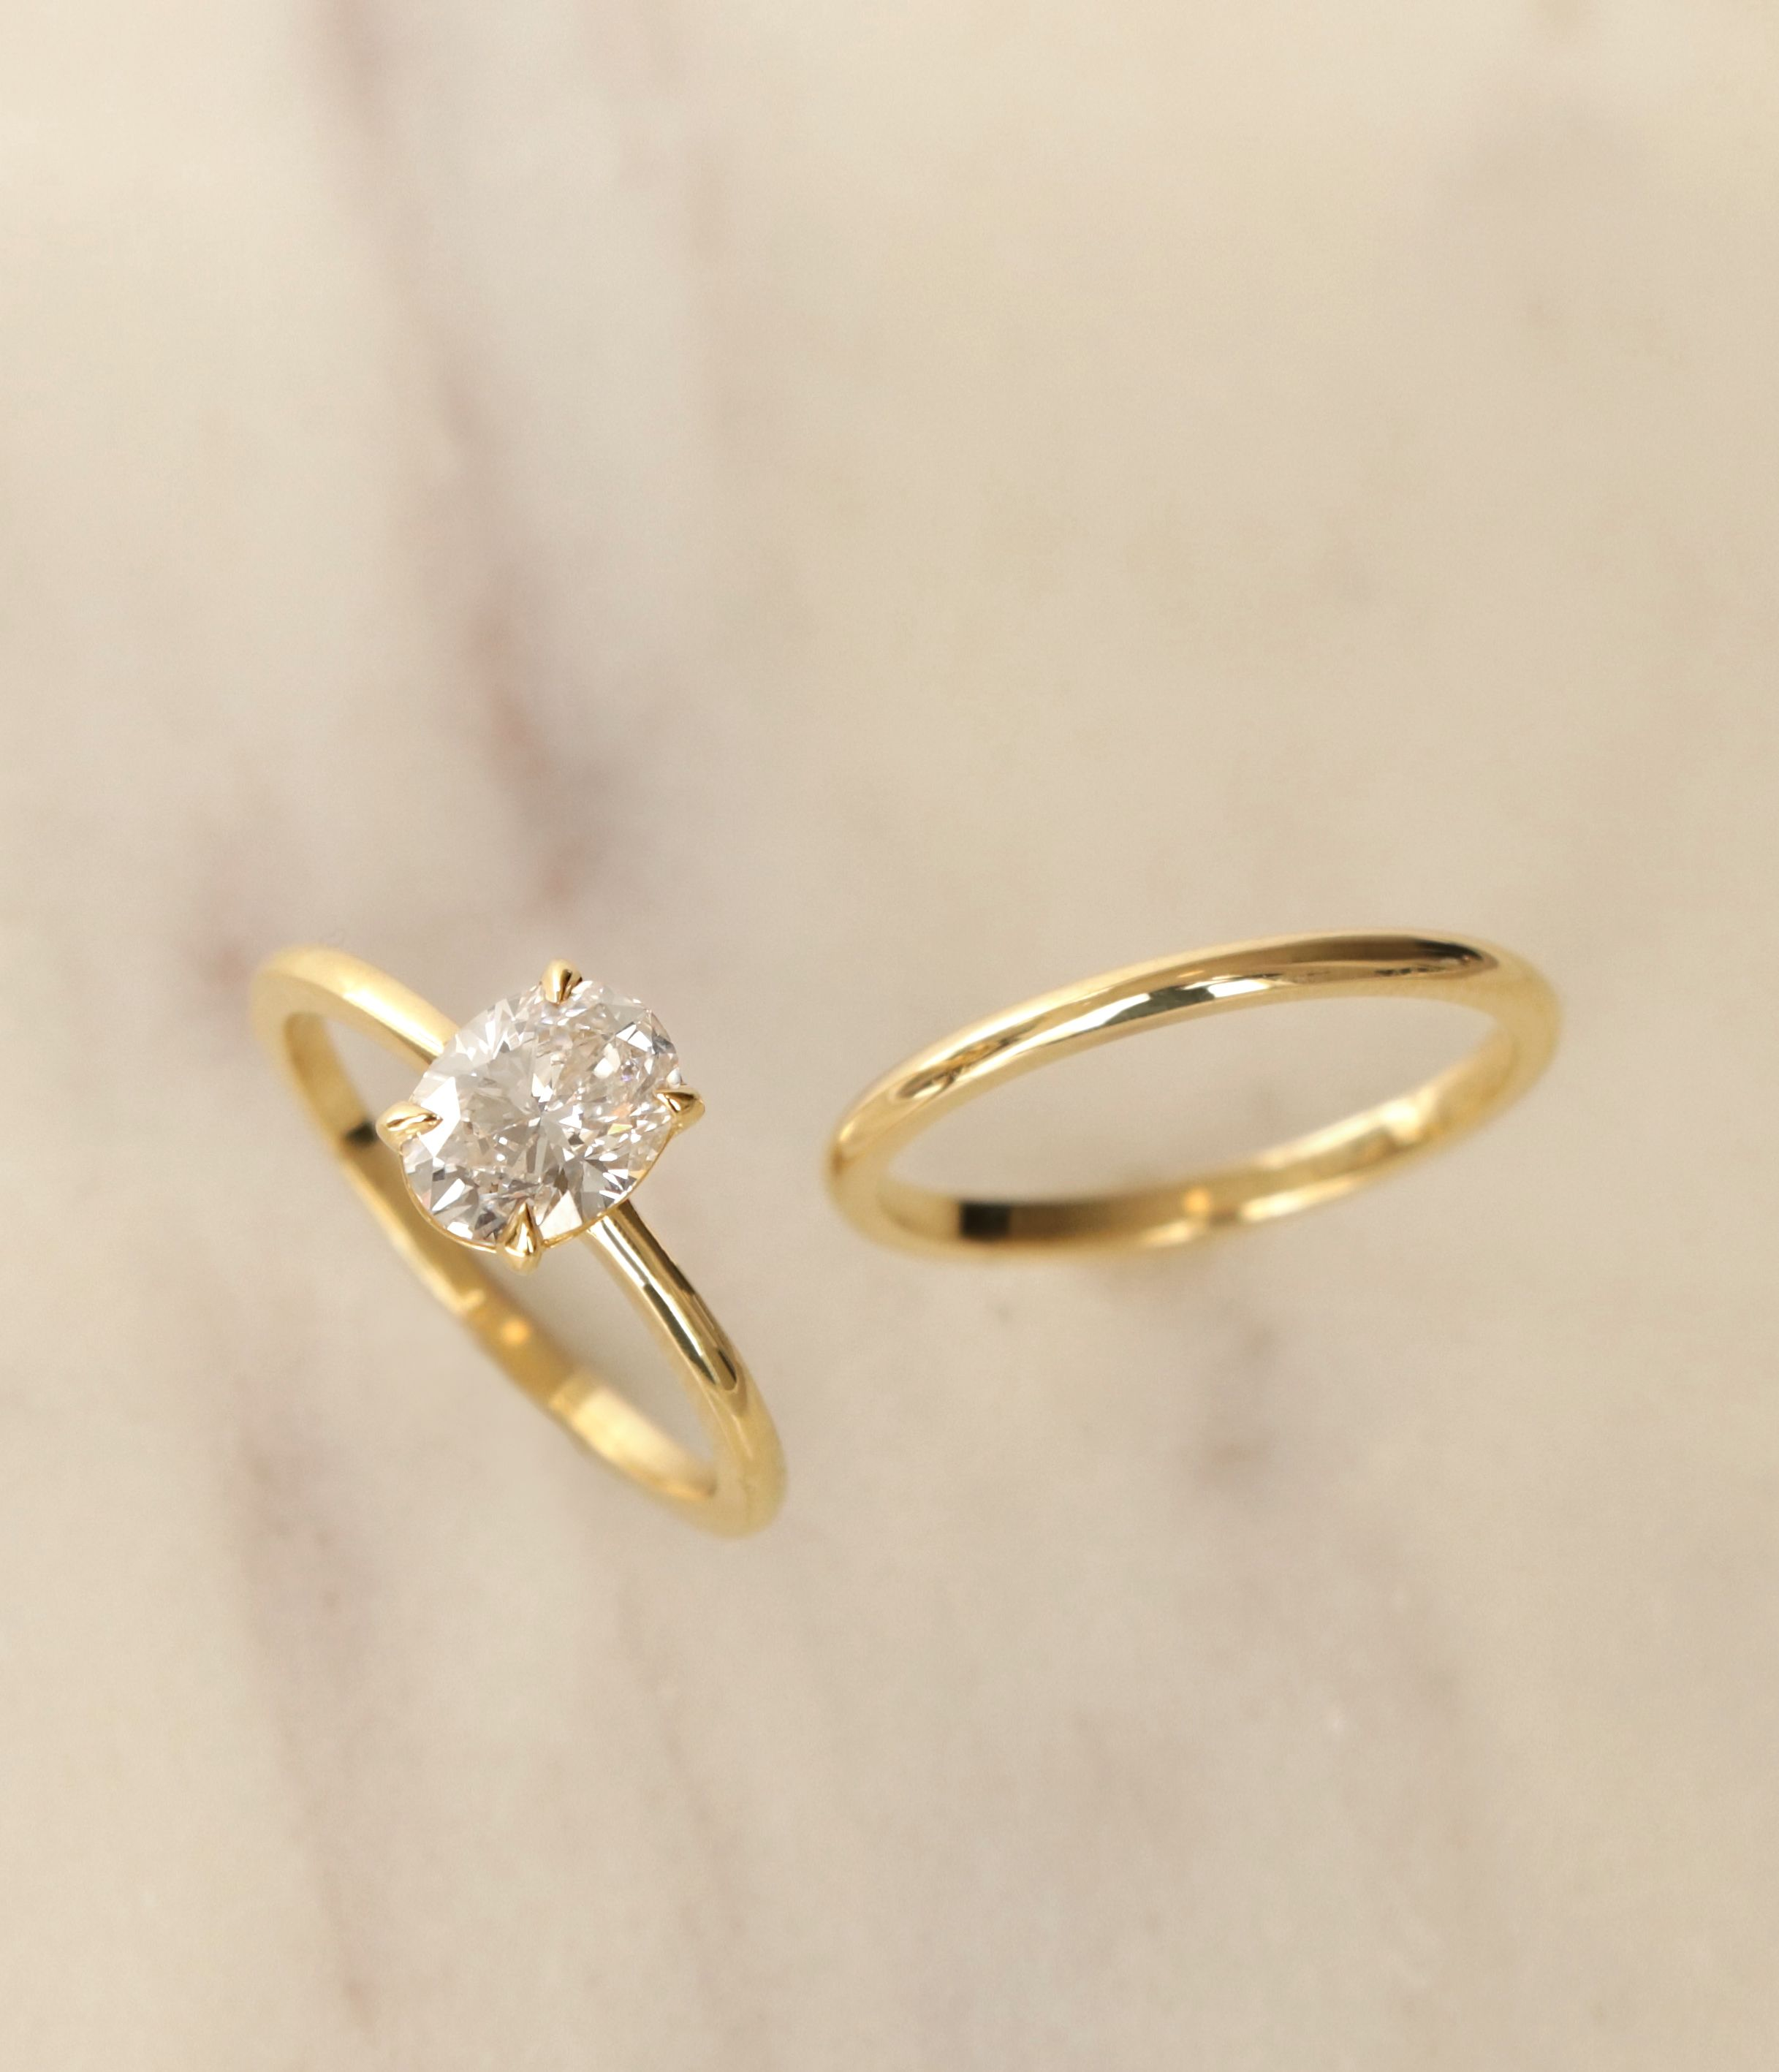 gorgeous minimalist beautiful and t the ring engagement to expensive pin these a affordable ideas be modern unique doesn are for have rings bride